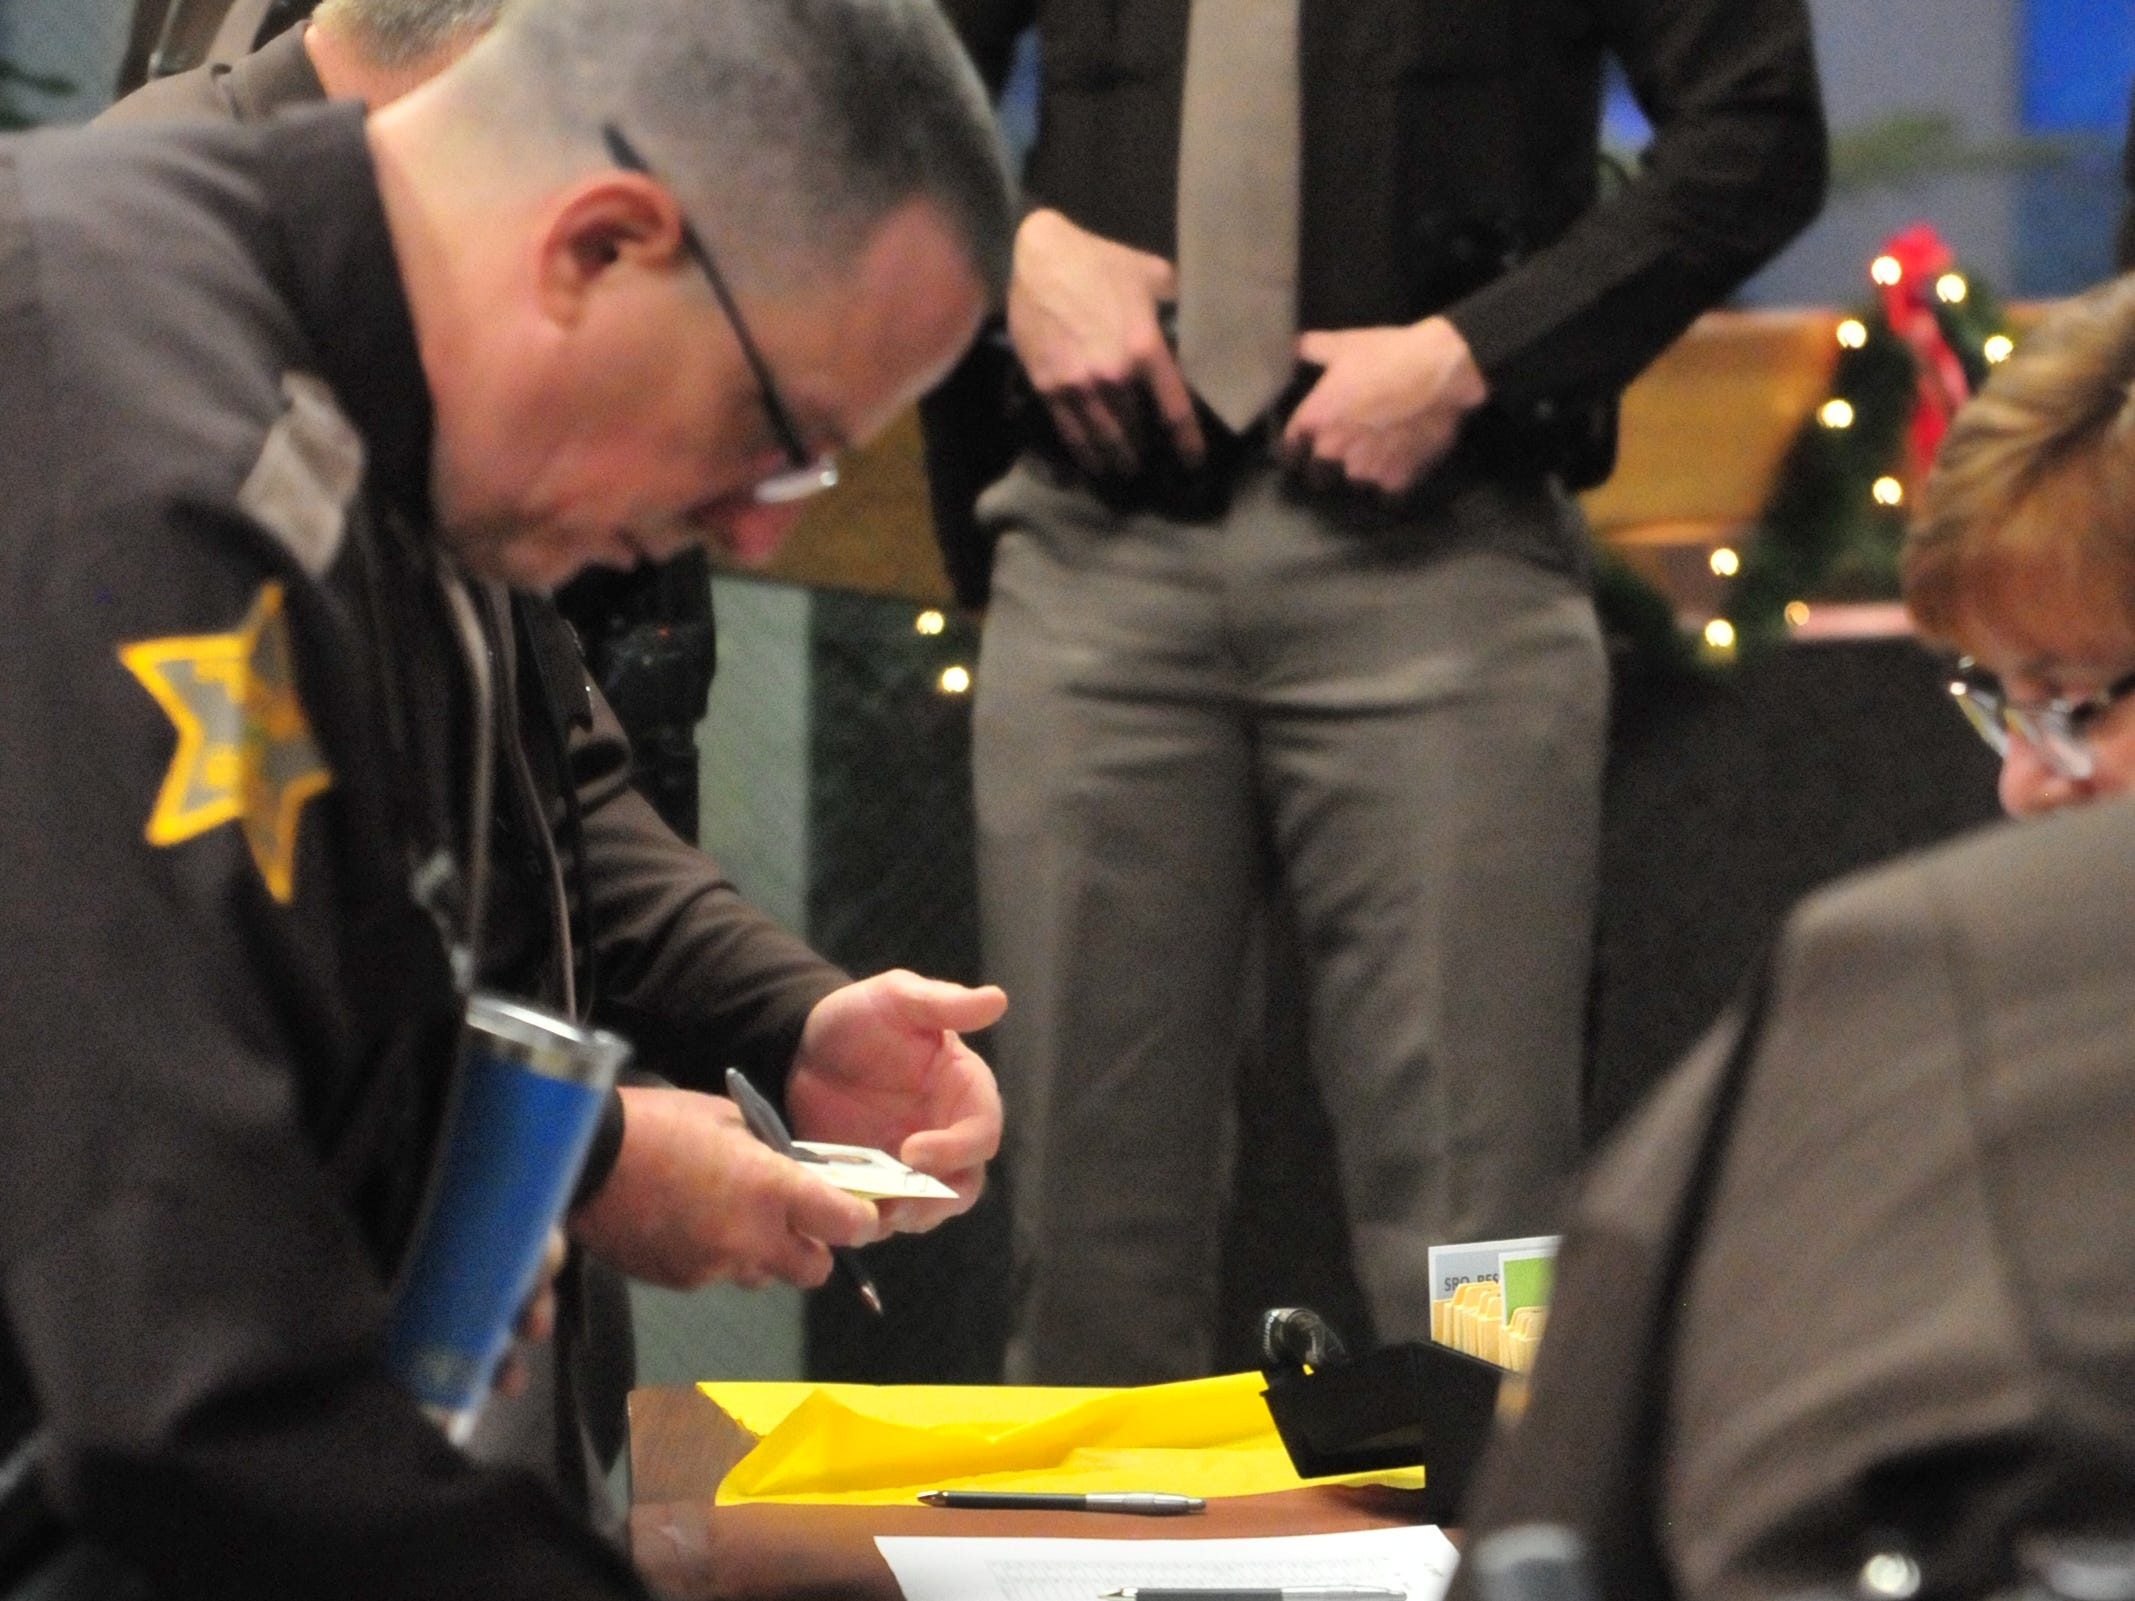 Wayne County Sheriff's Office personnel find their new identification cards that they needed to sign Friday at a group swearing in ceremony.